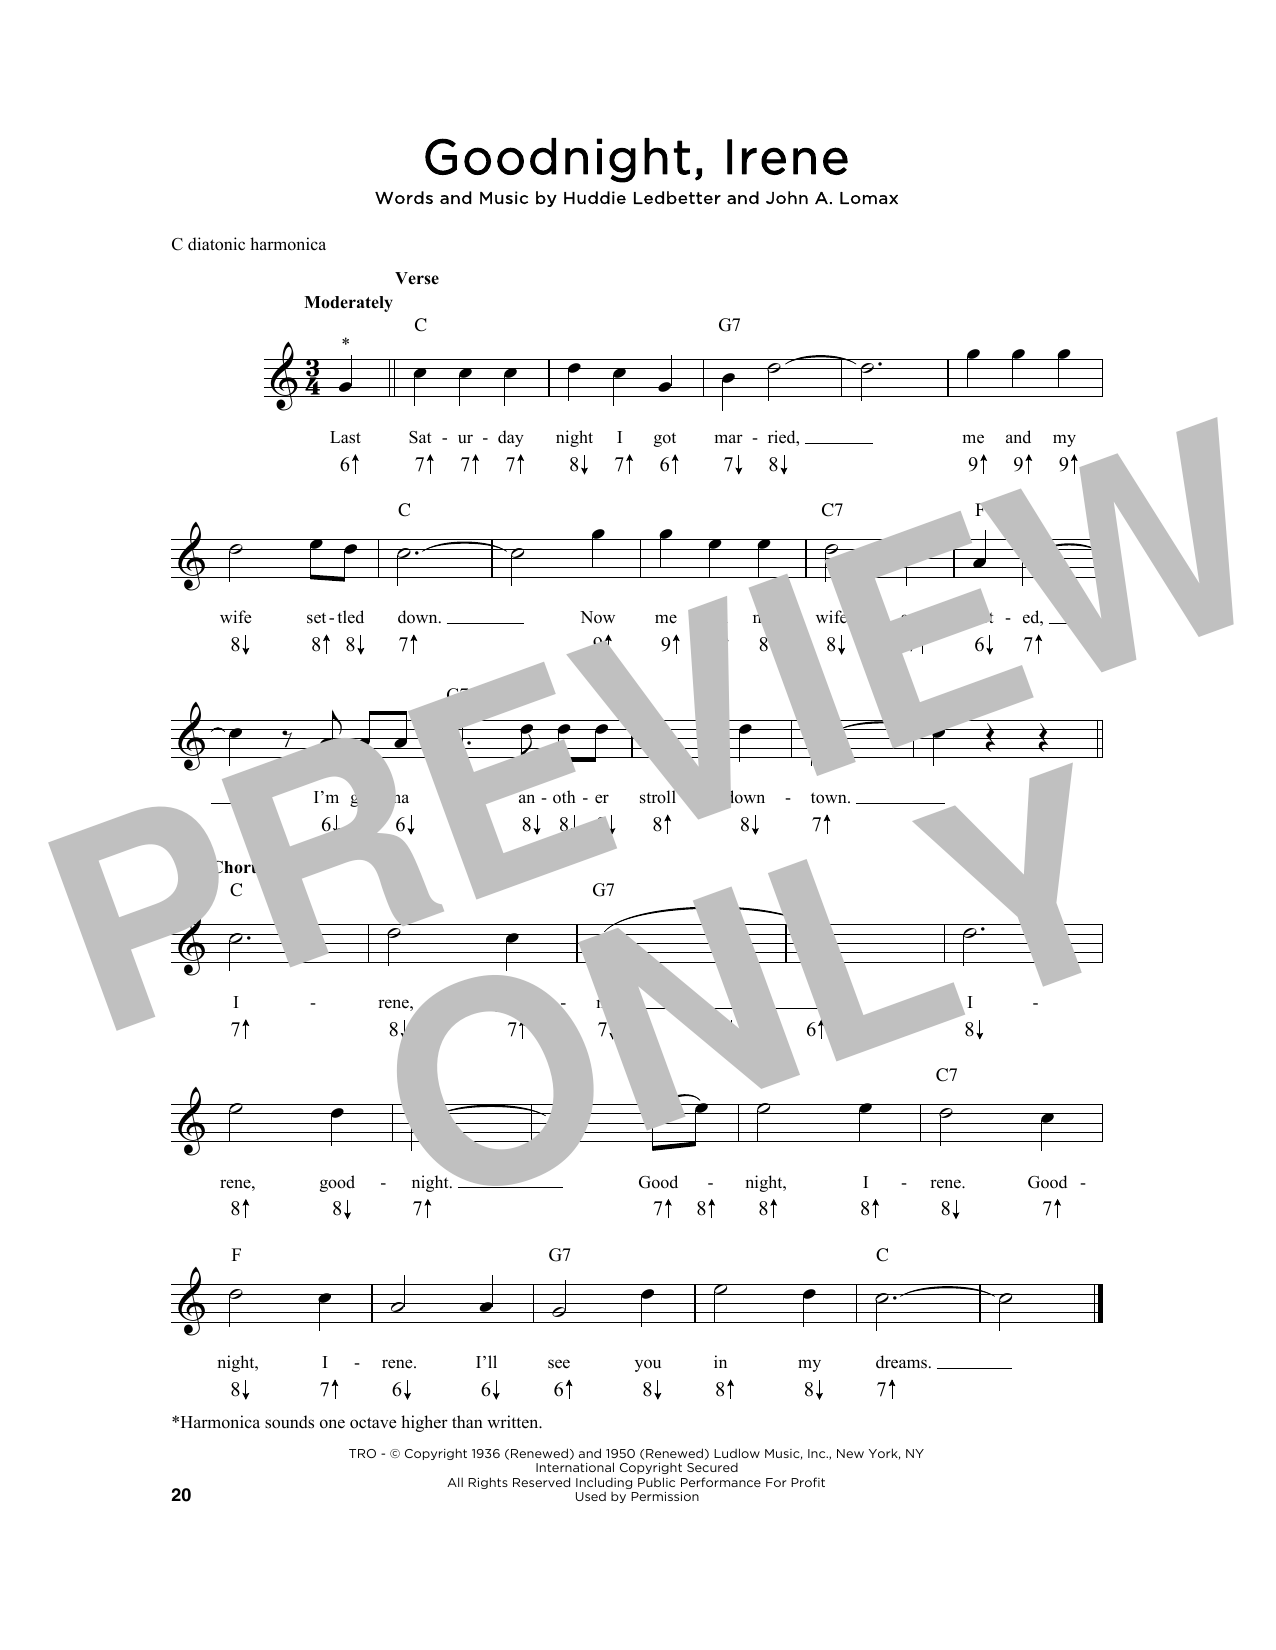 Huddie Ledbetter Goodnight, Irene sheet music notes and chords. Download Printable PDF.